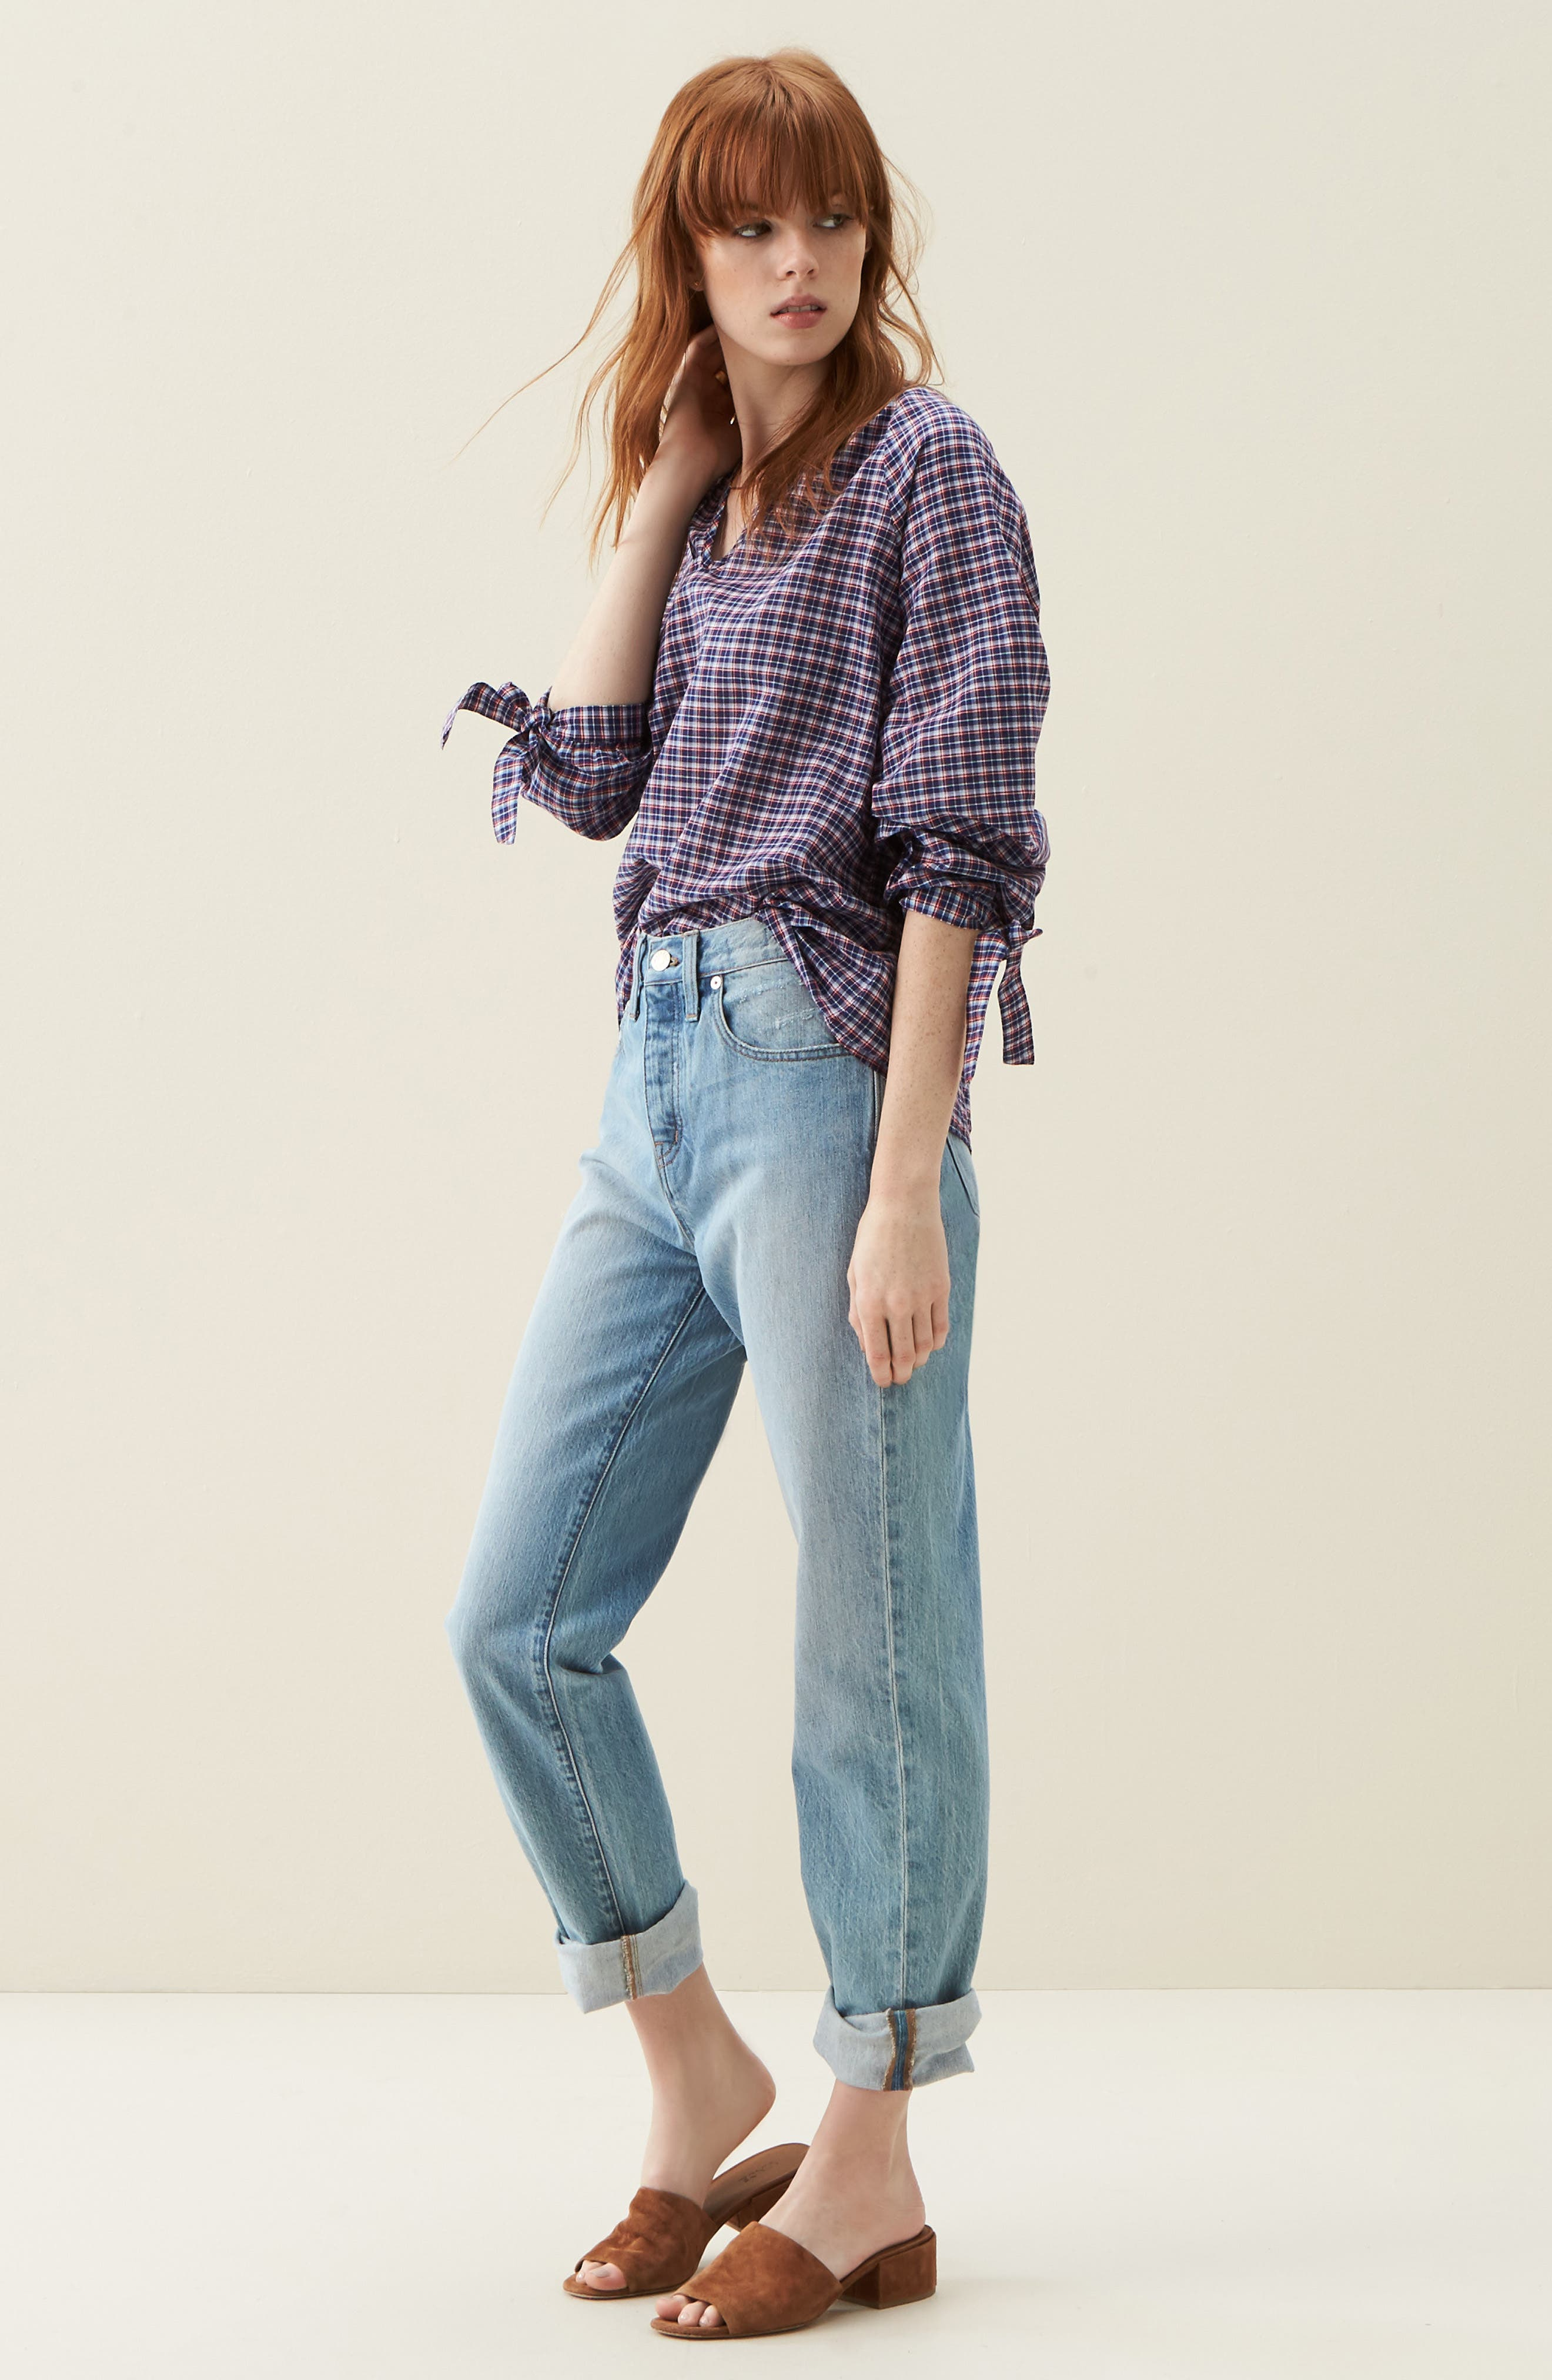 MADEWELL, 'Perfect Summer' High Rise Ankle Jeans, Main thumbnail 1, color, FITZGERALD WASH